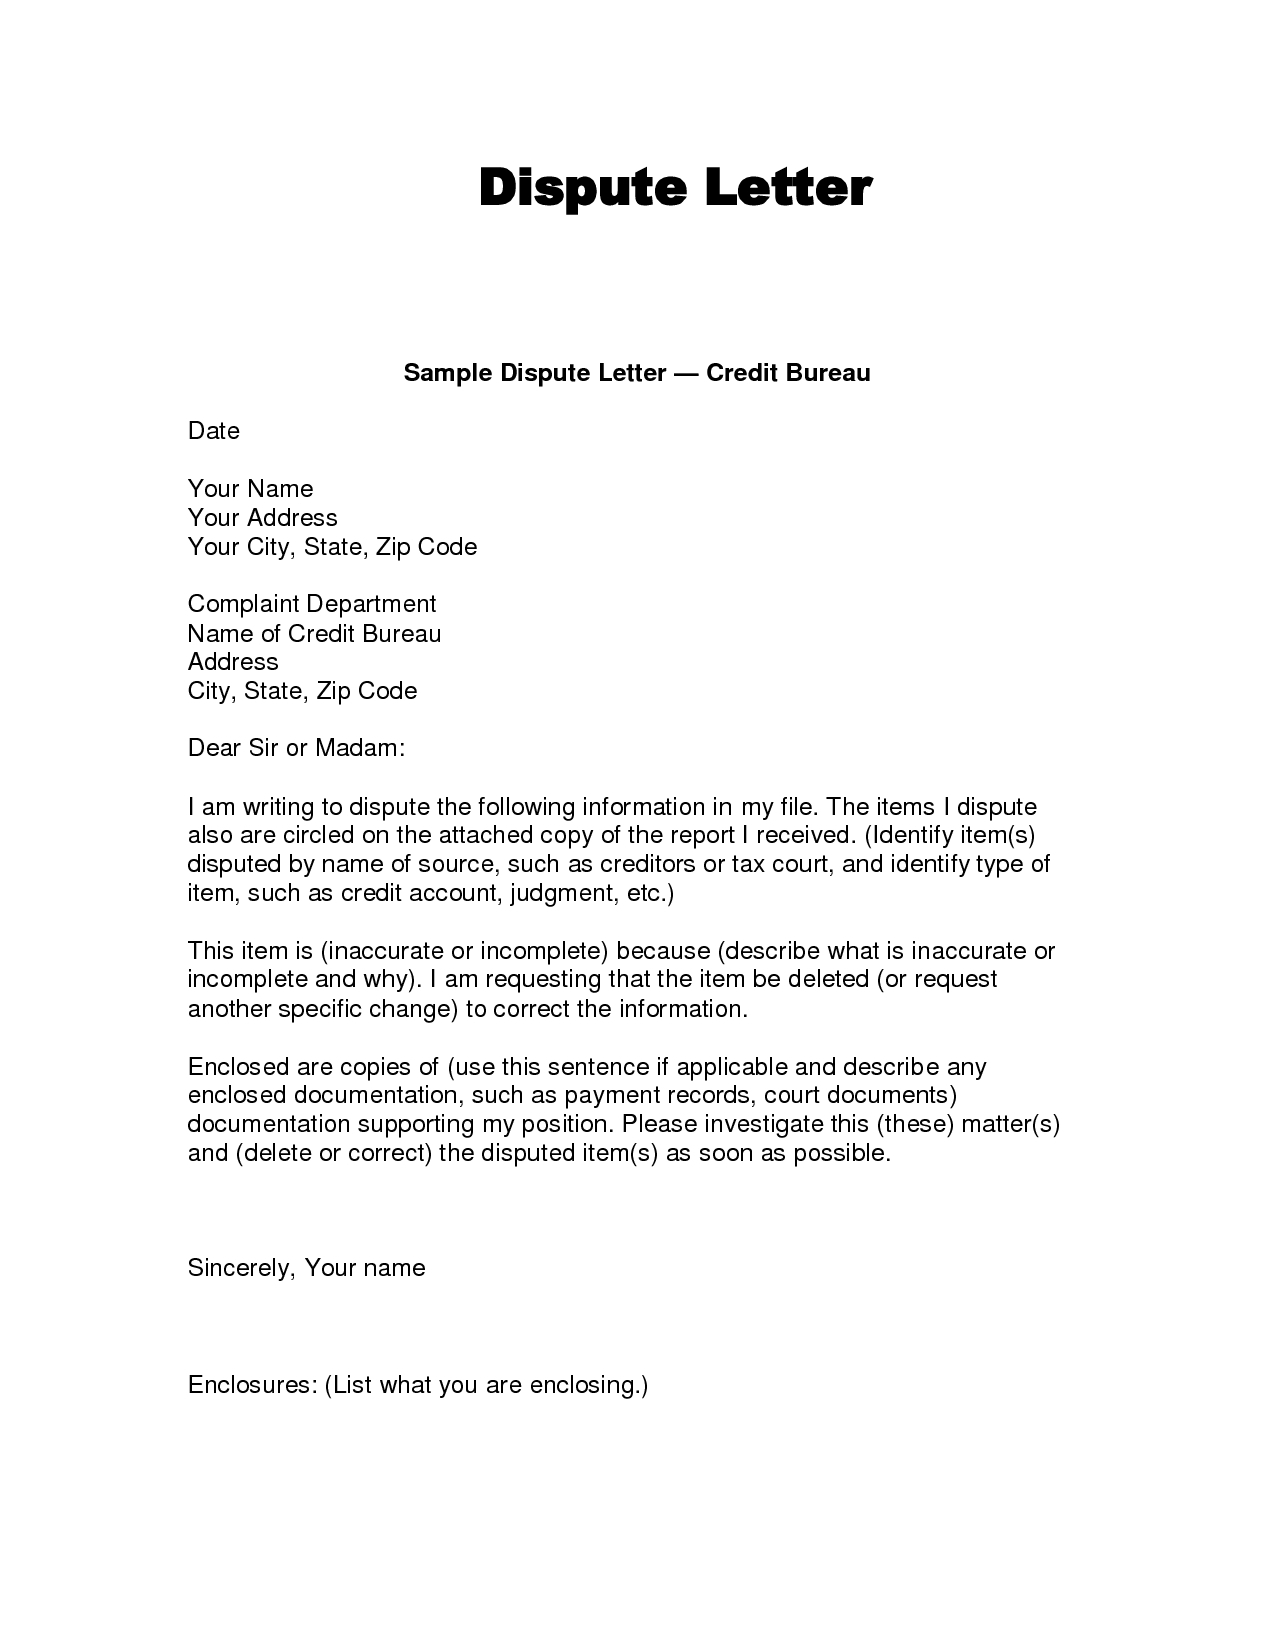 Credit Dispute Letter Template - Credit Dispute Letter Templates Acurnamedia